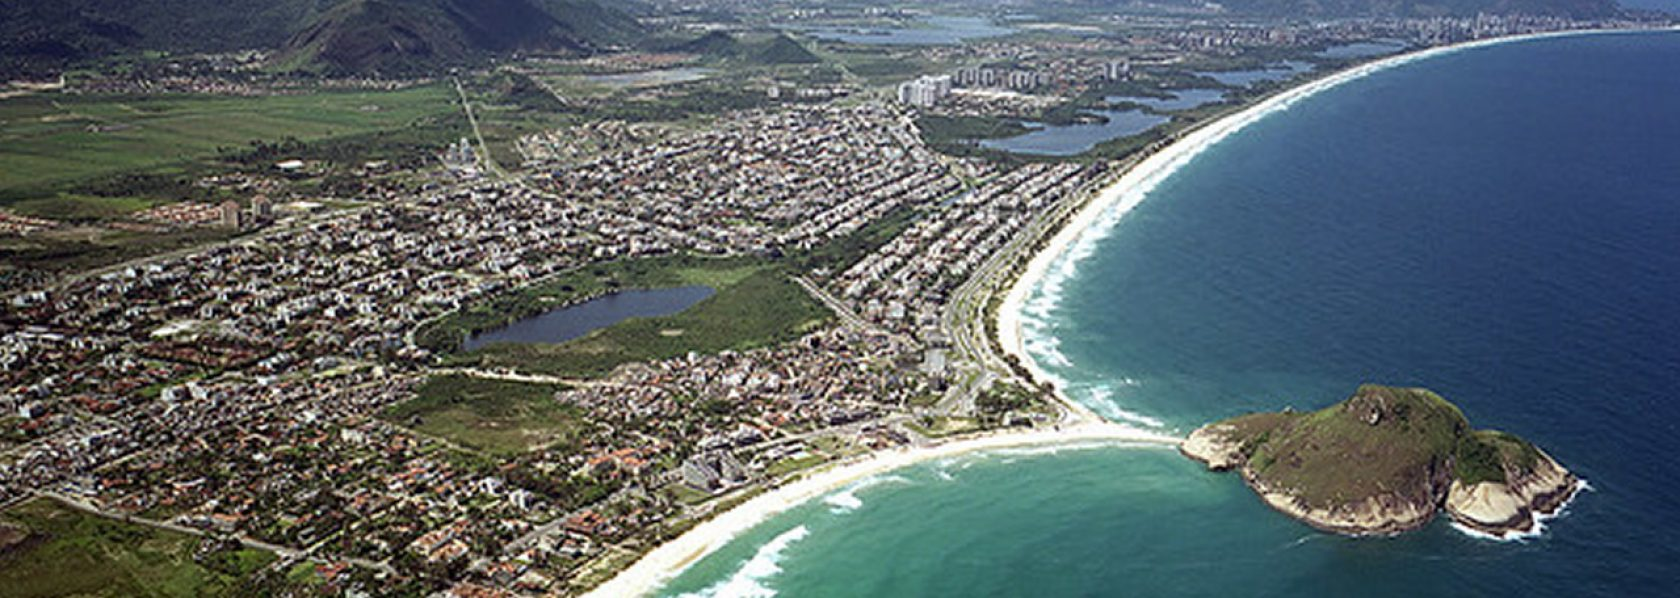 Vista Aérea do Recreio